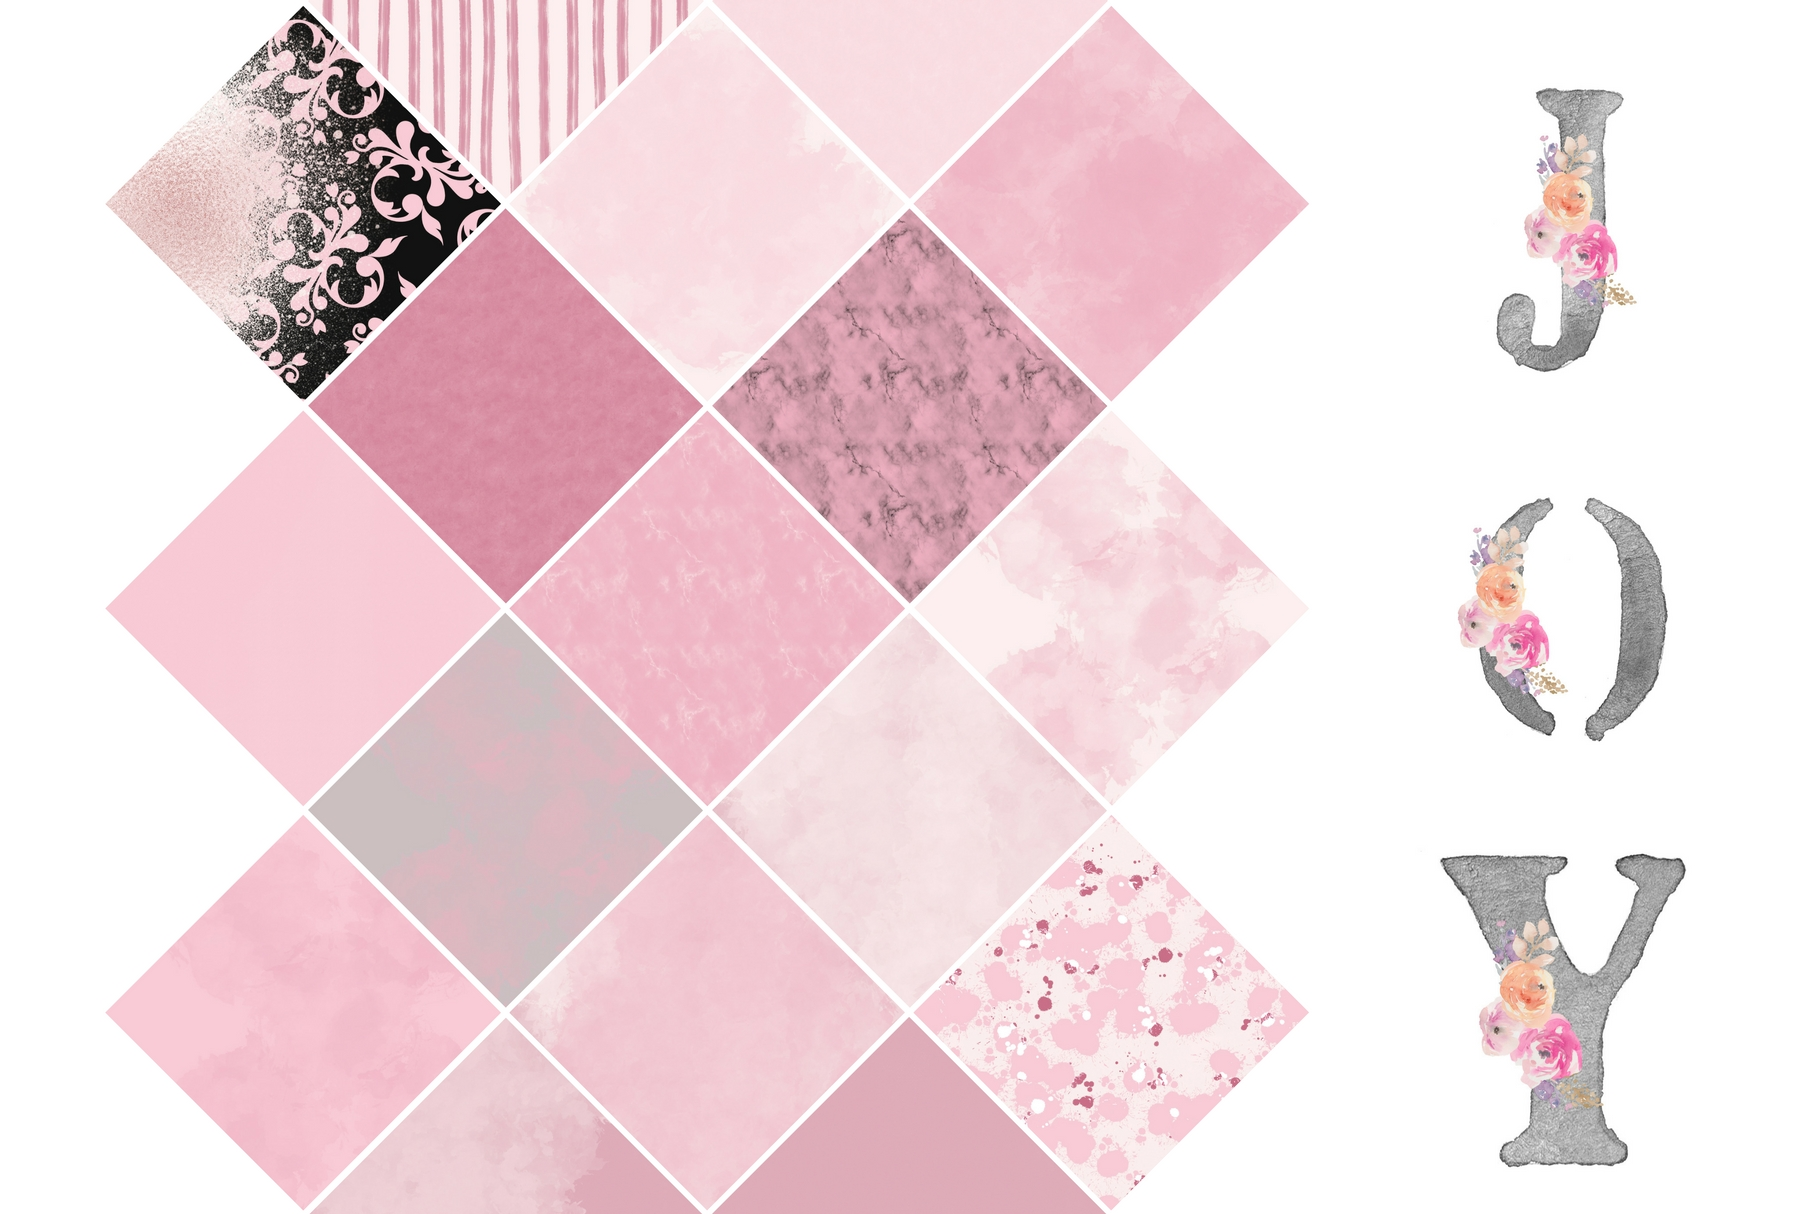 Paint and Pink Textures + Quotes Graphic Textures By Creative Stash - Image 3